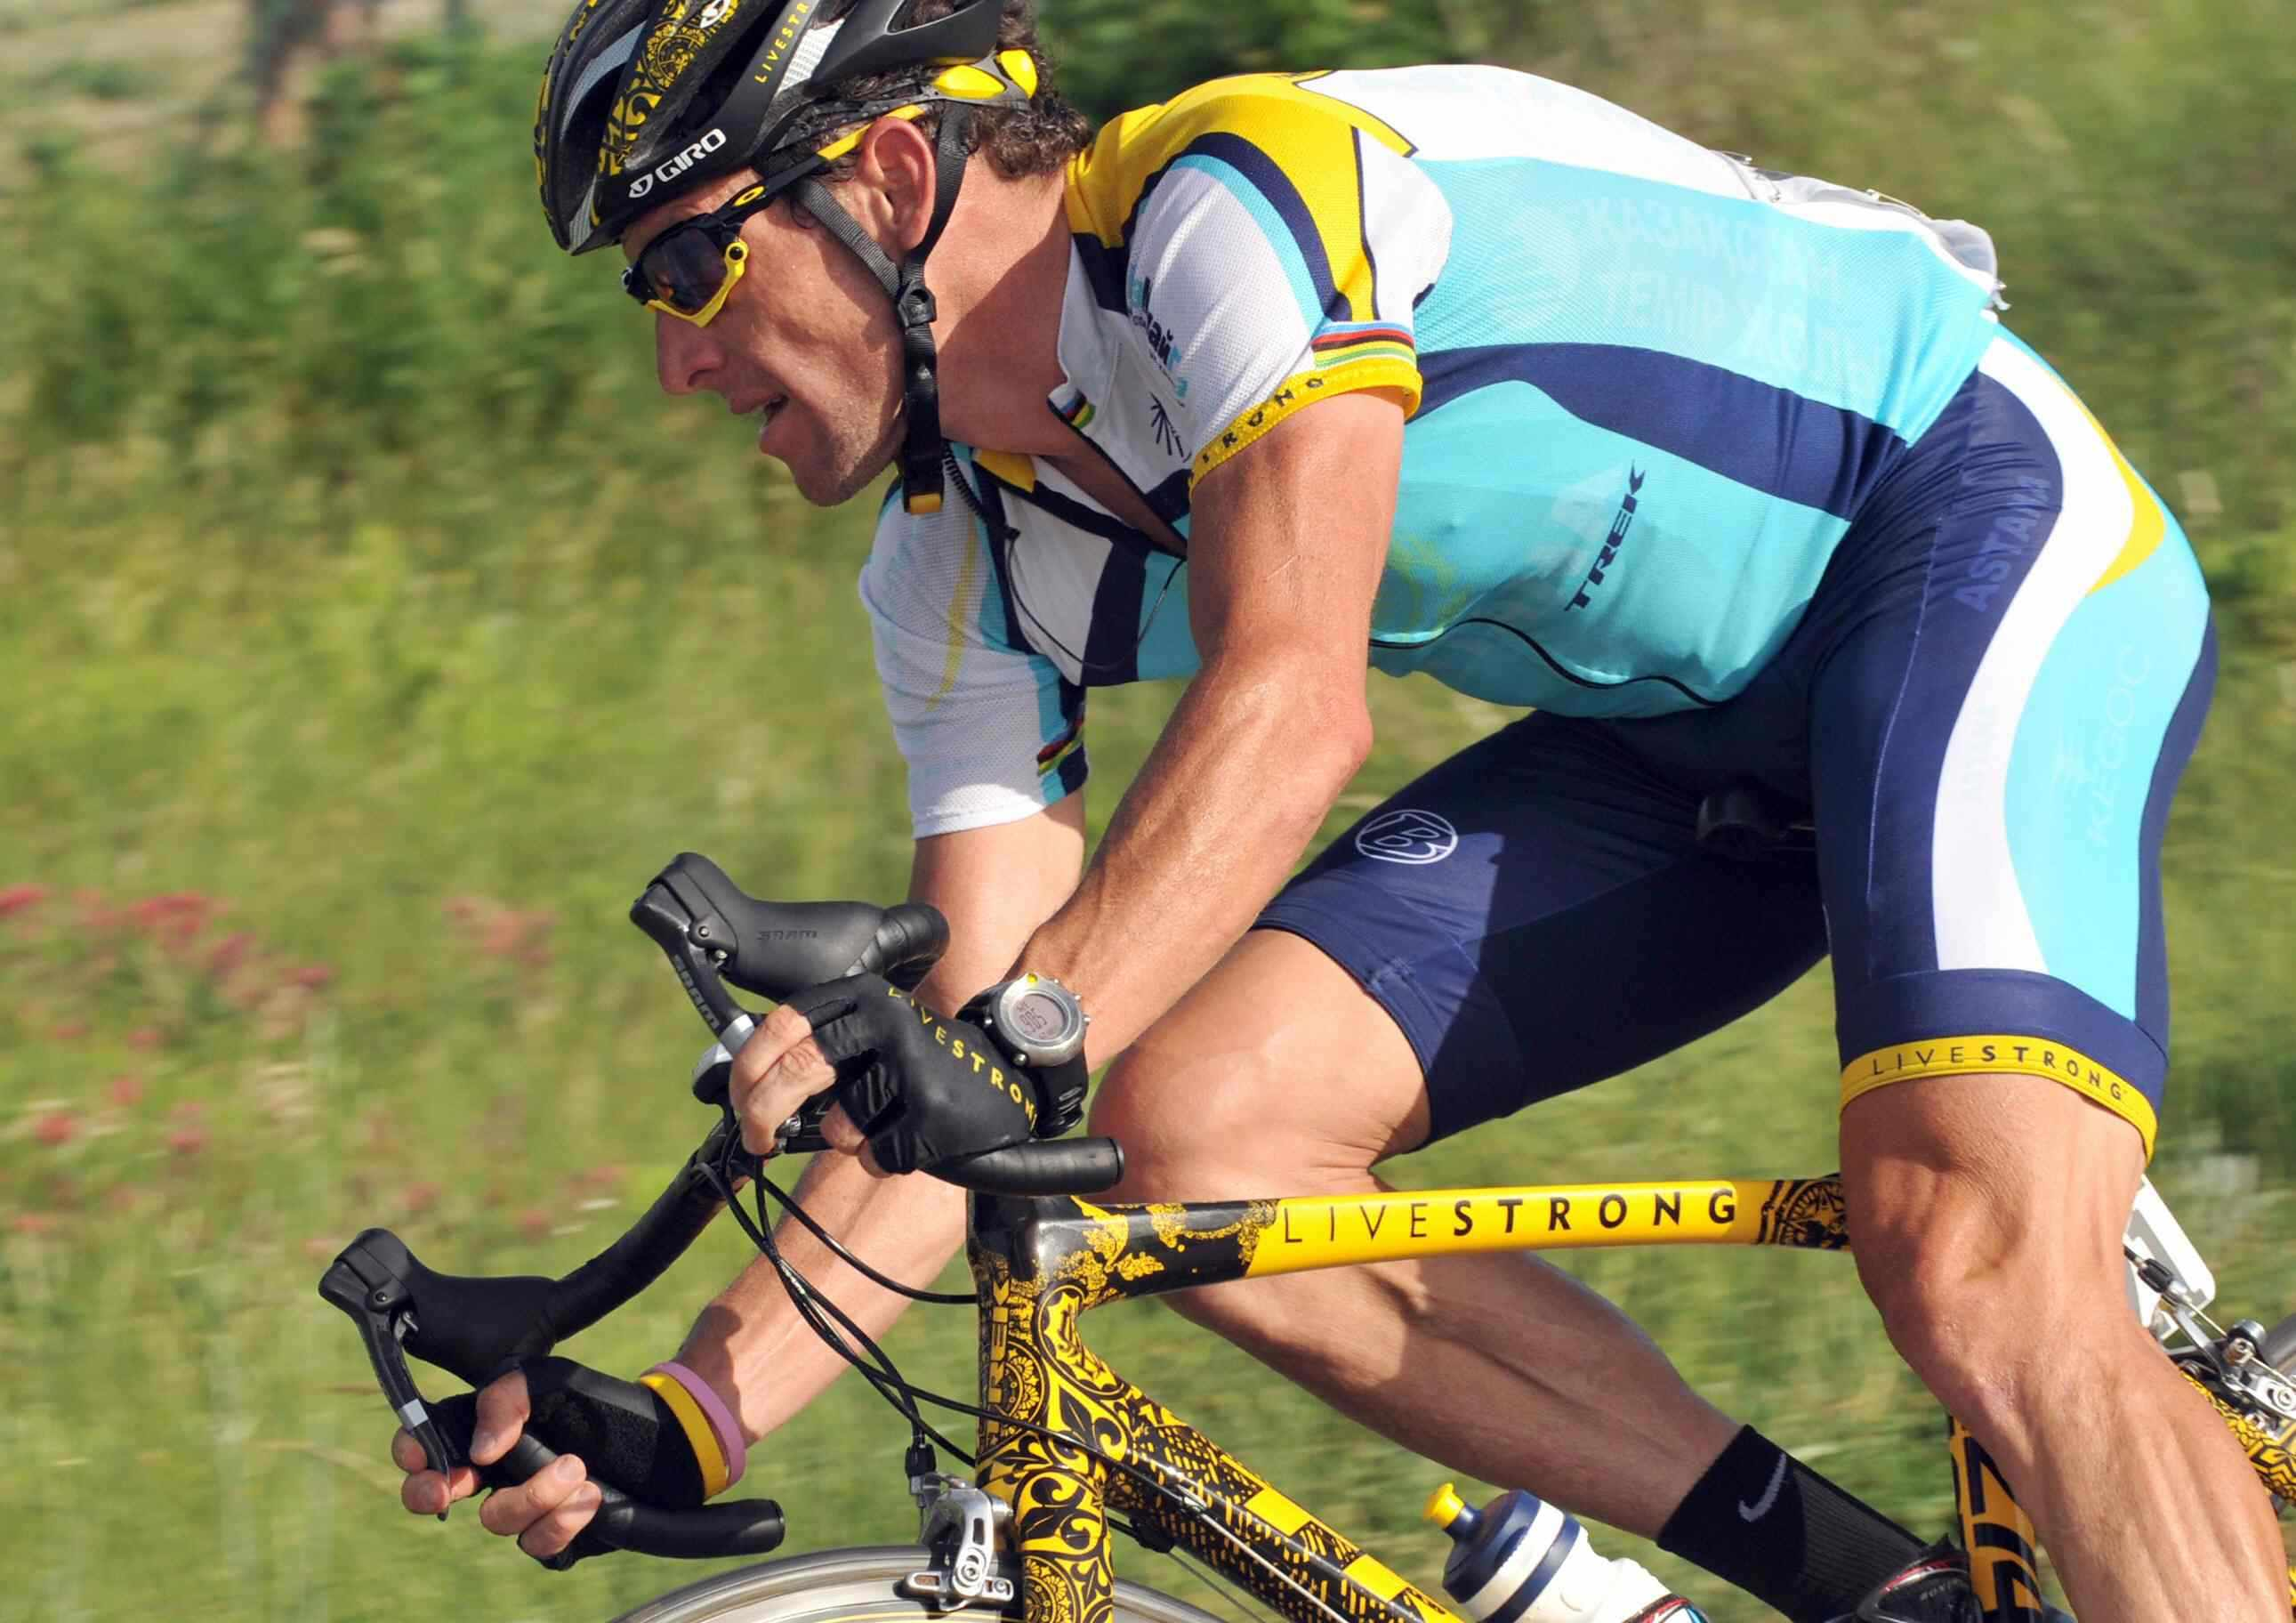 American Lance Armstrong in full race livery during the 2009 Giro d'Italia.